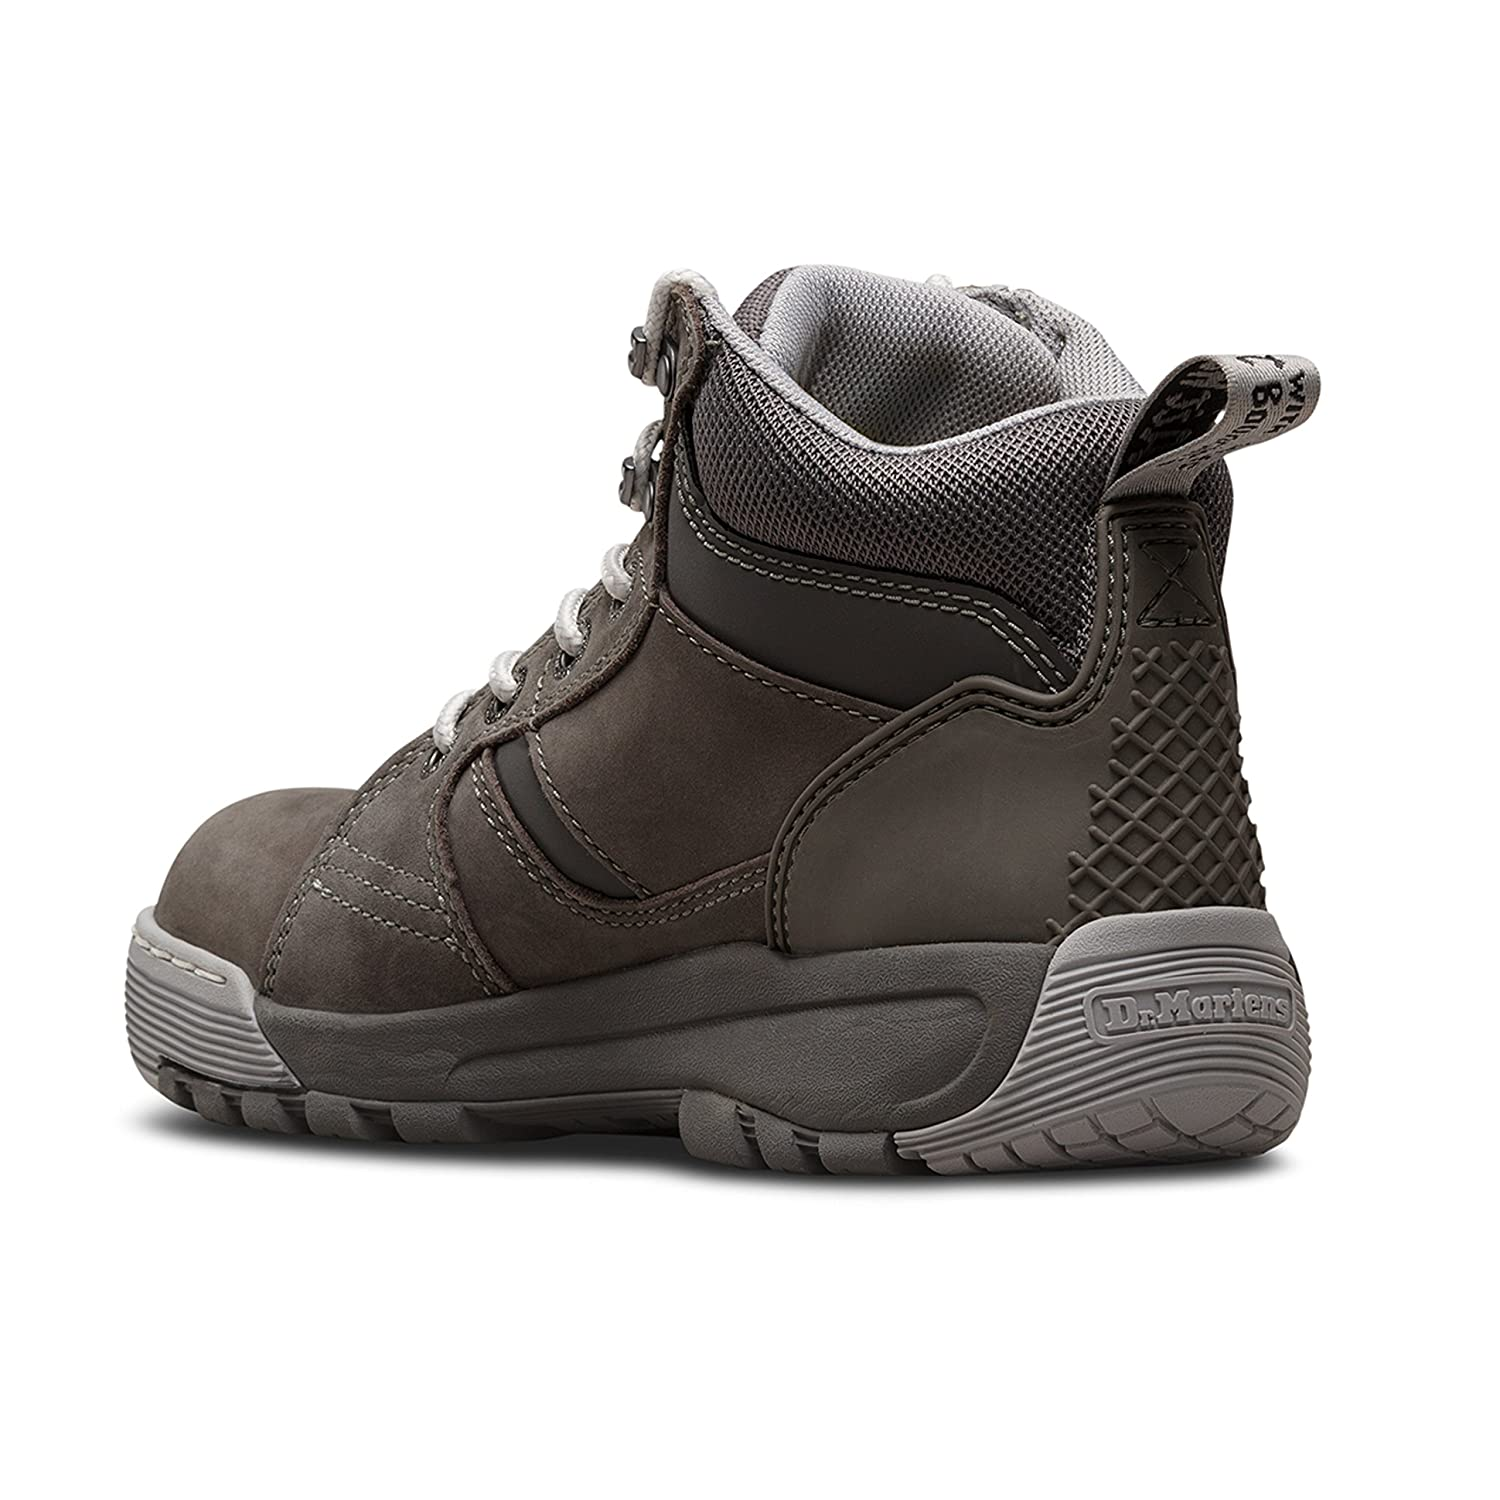 Work Safety Equipment & Gear Martens DM Docs Ladies Opal Grey Leather Steel Toe Cap Work Safety Boots PPE Dr